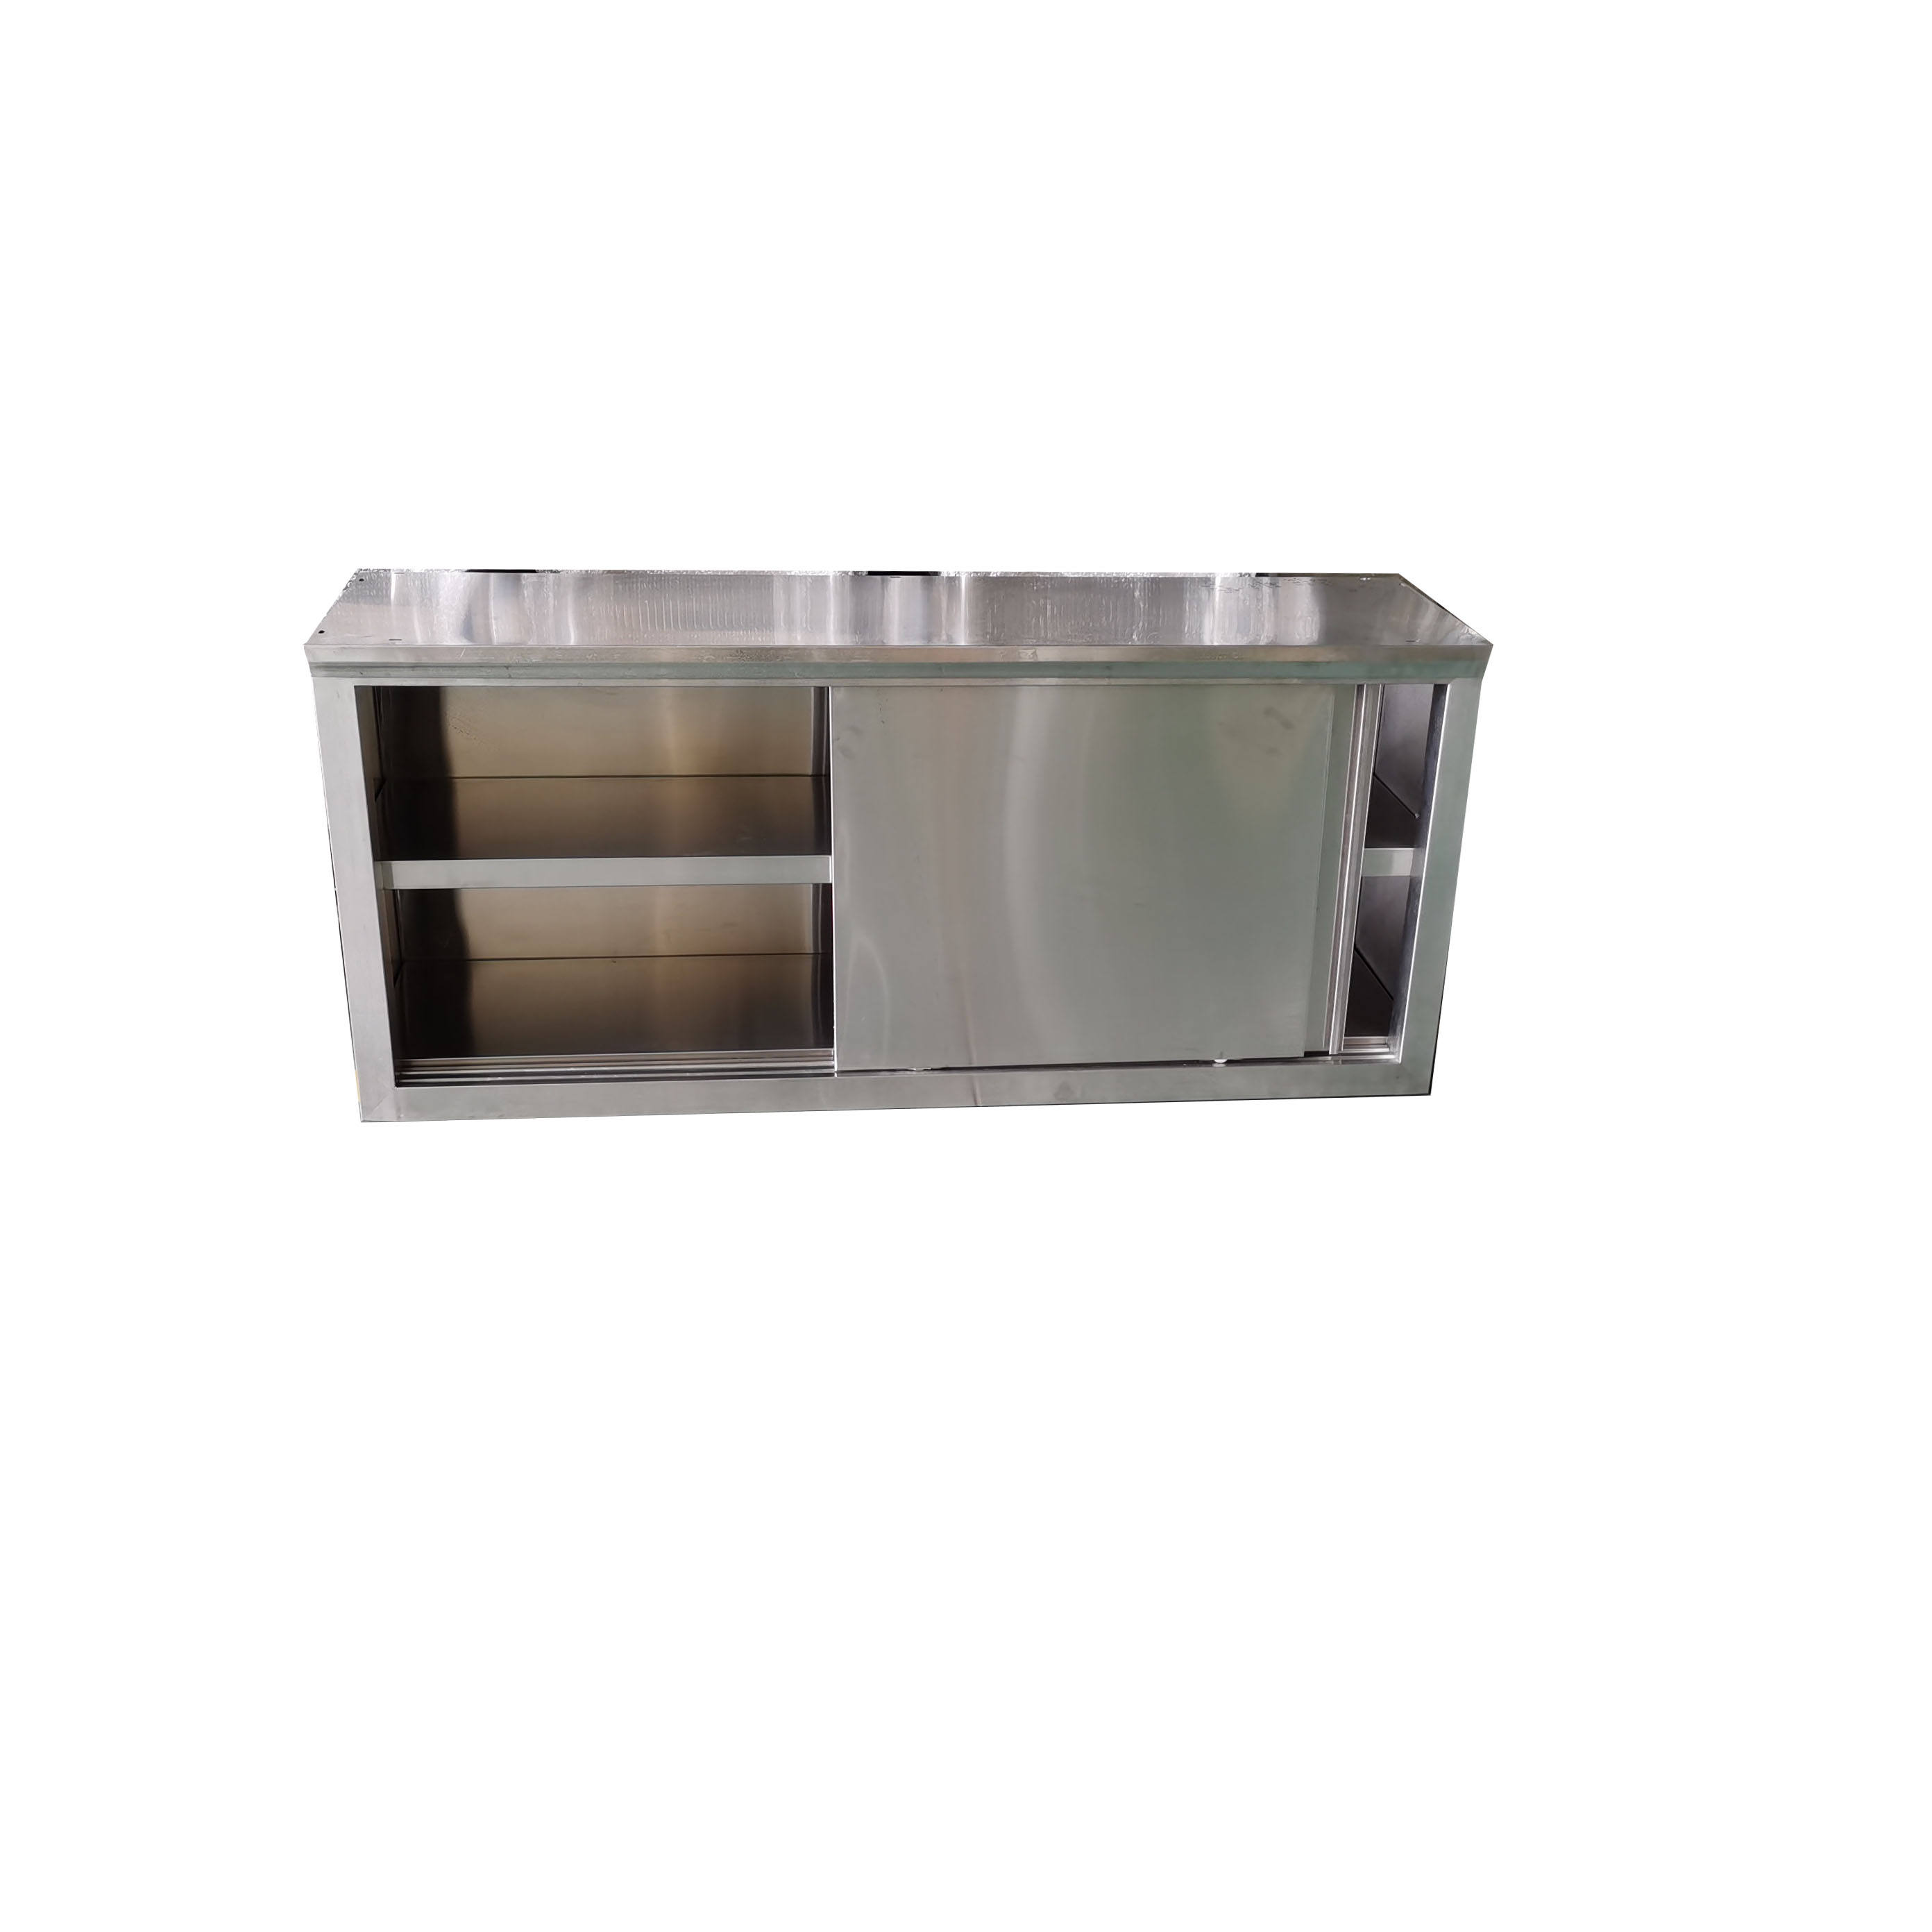 Shandong Product commercial stainless steel wall hanging storage kitchen cabinet